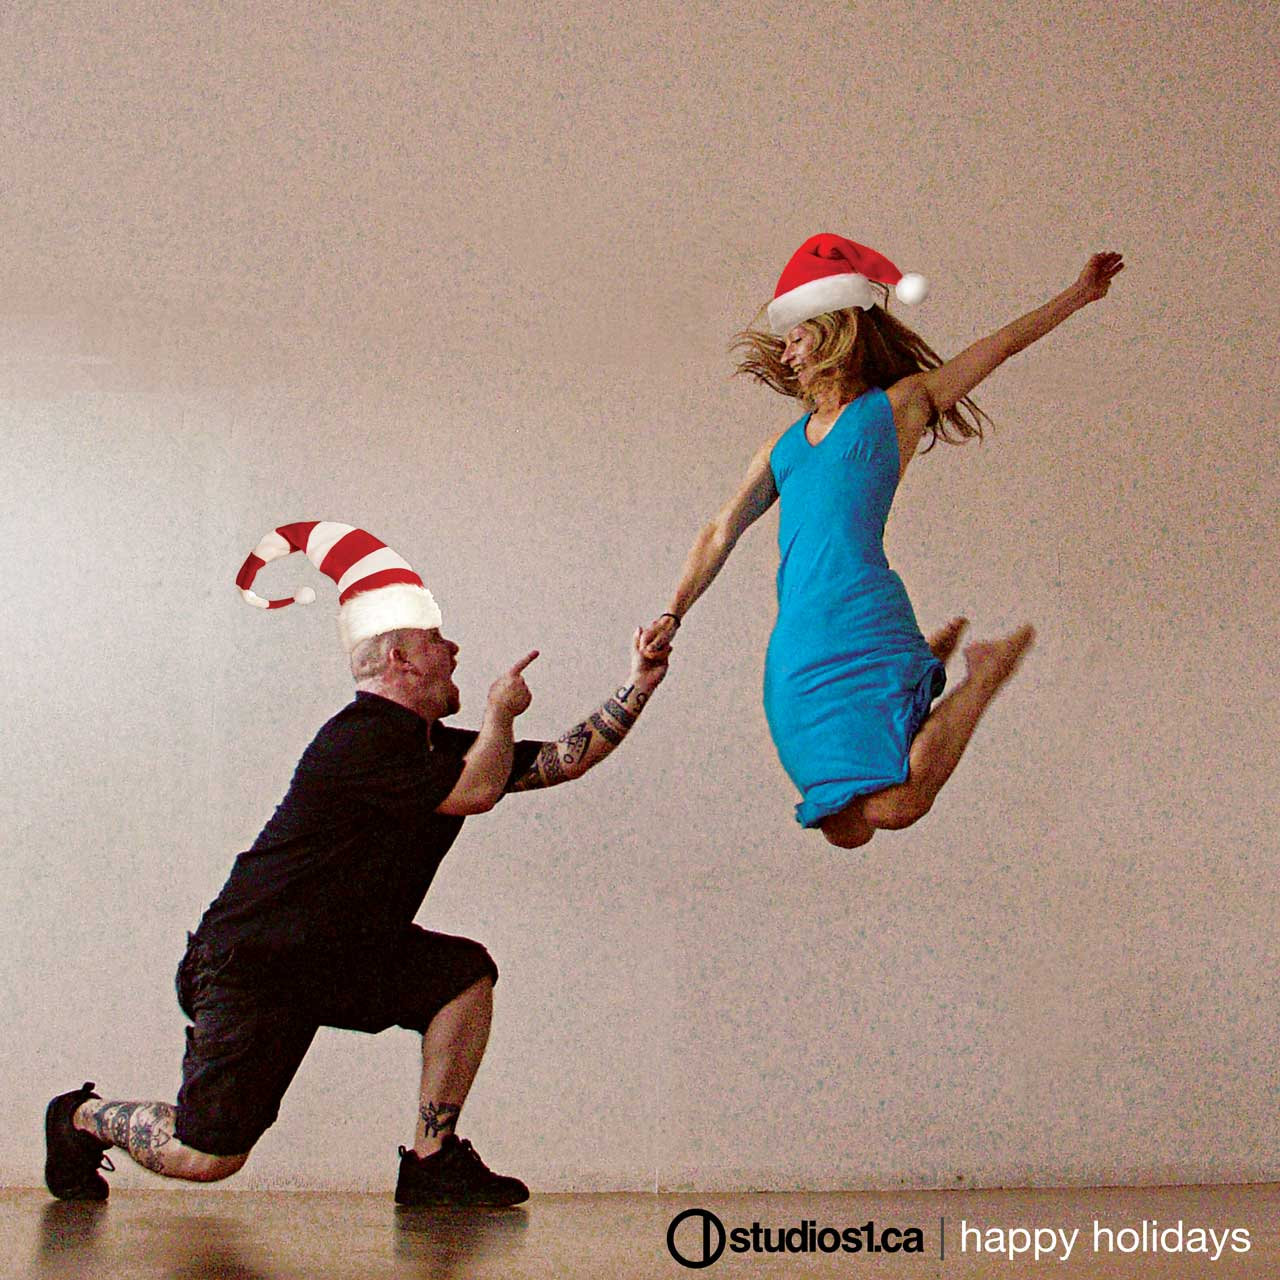 studios1.ca Happy Holidays 2015